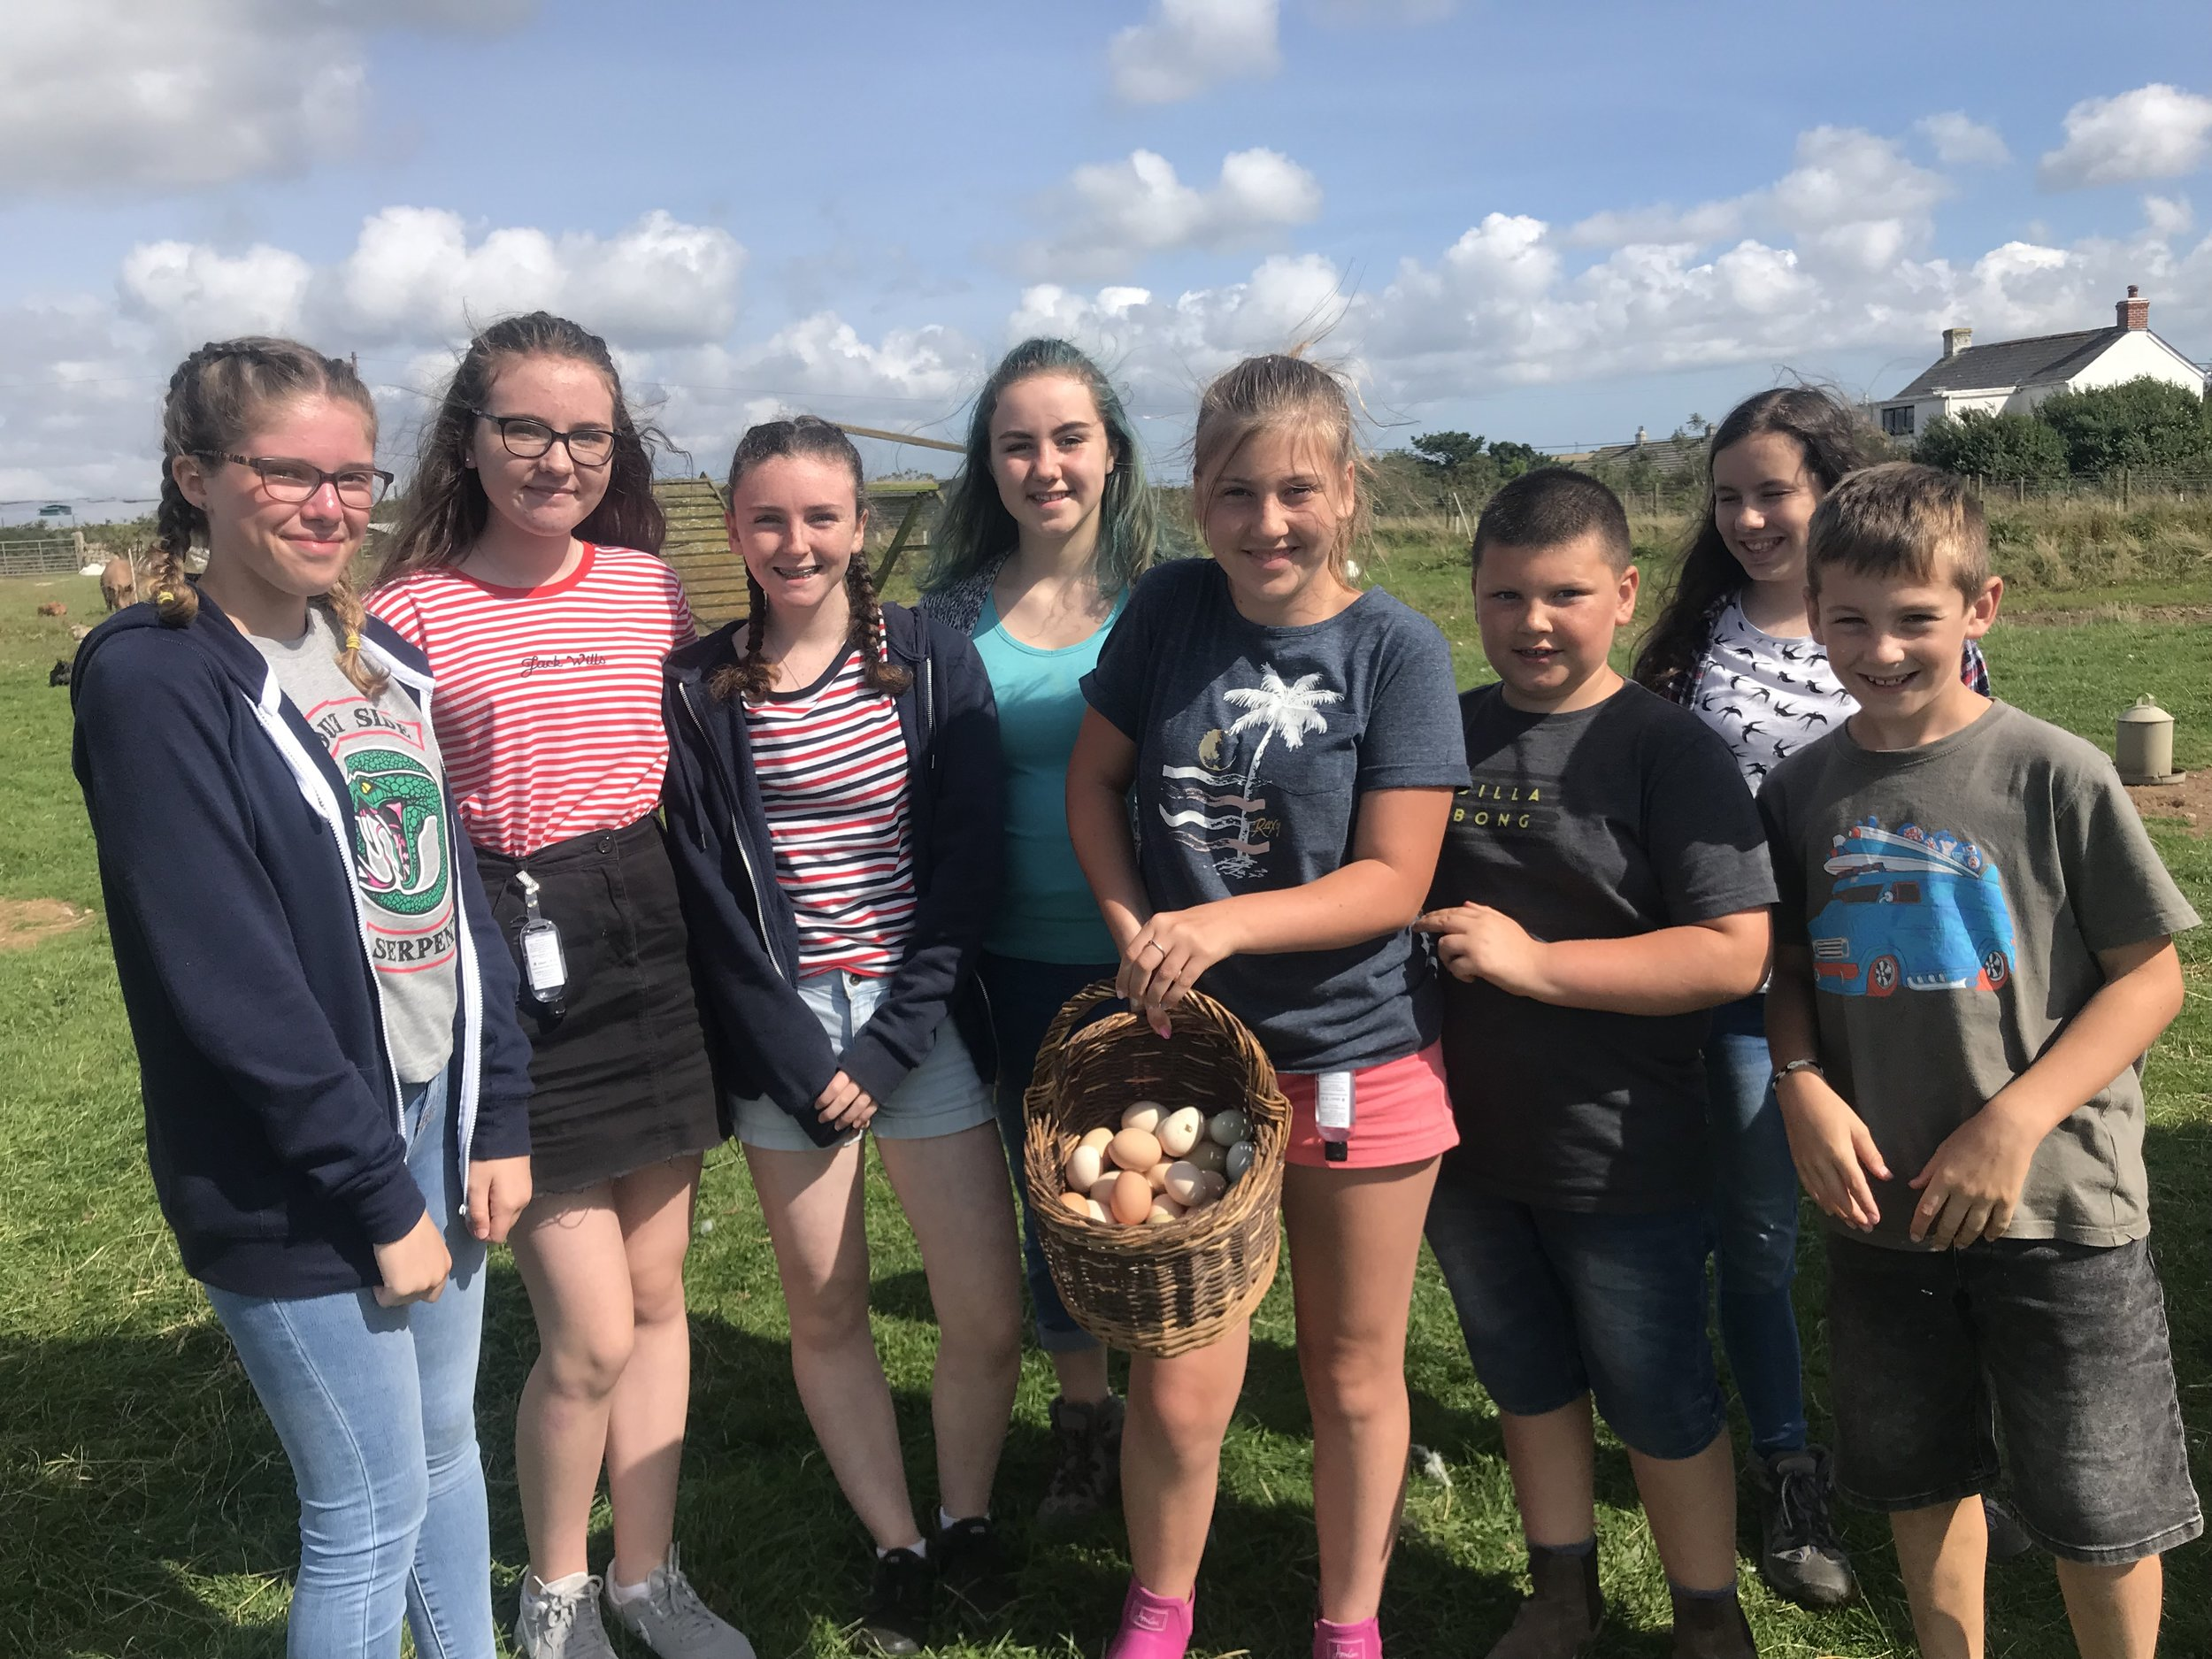 Collecting eggs as a team, before boxing them up to sell at the gate.